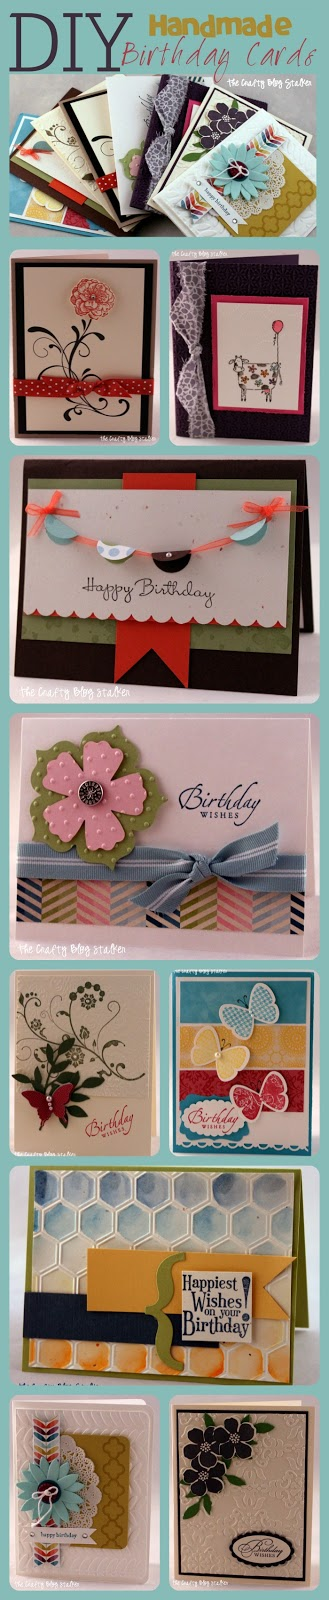 Handmade Birthday Card Ideas | Paper Crafting | Birthday Cards | DIY